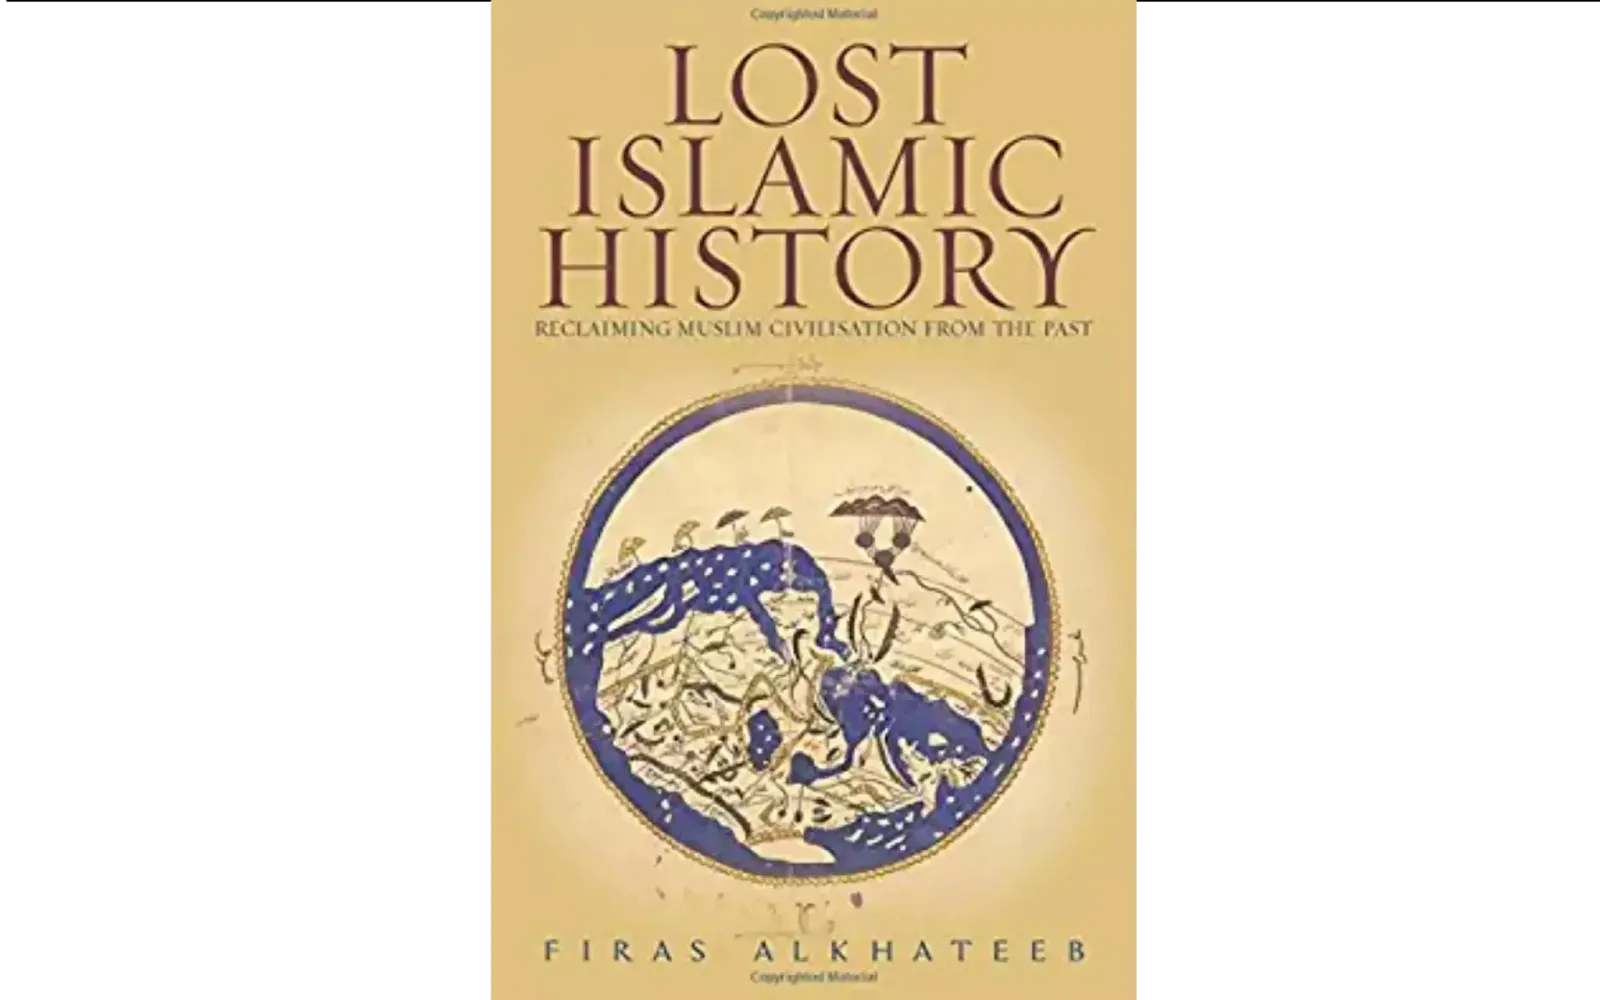 Lost Islamic History By Firas Alkhateeb Free Pdf Download